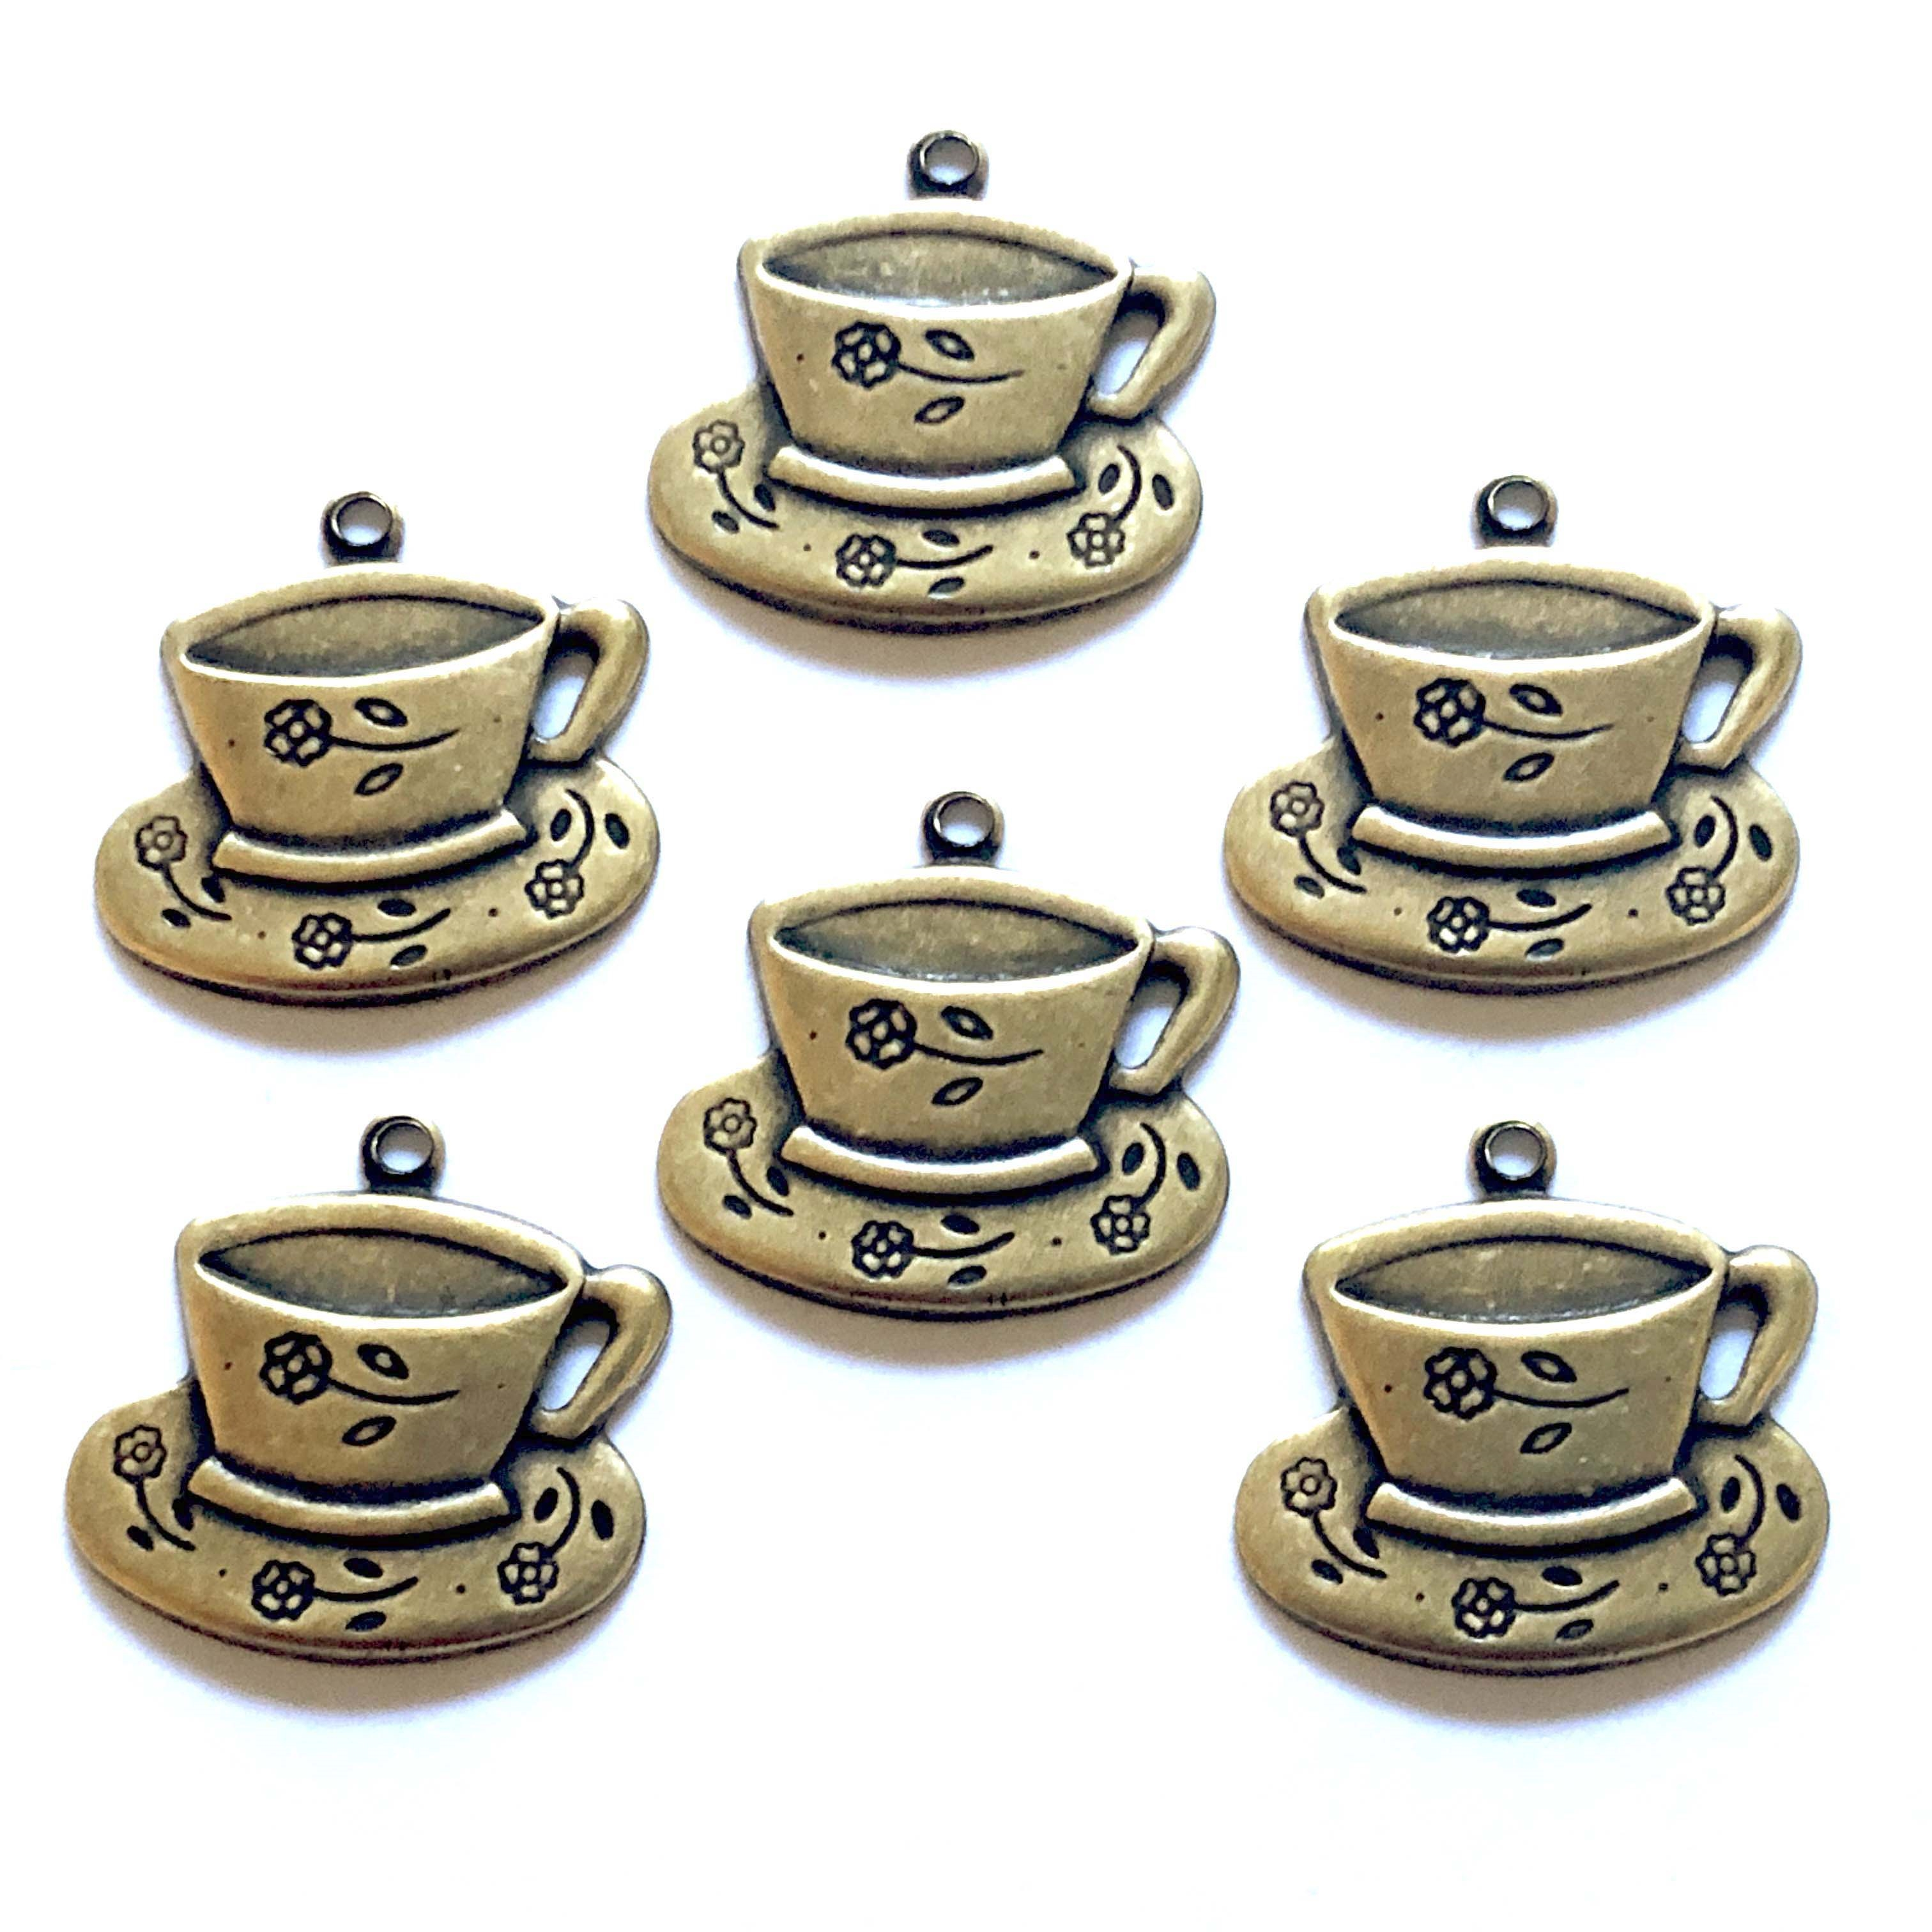 brass tea cups, tea cup charms, brass ox, antique brass, 07066, tea time charms, jewelry making supplies, vintage jewelry supplies, bsueboutiques, black antiquing